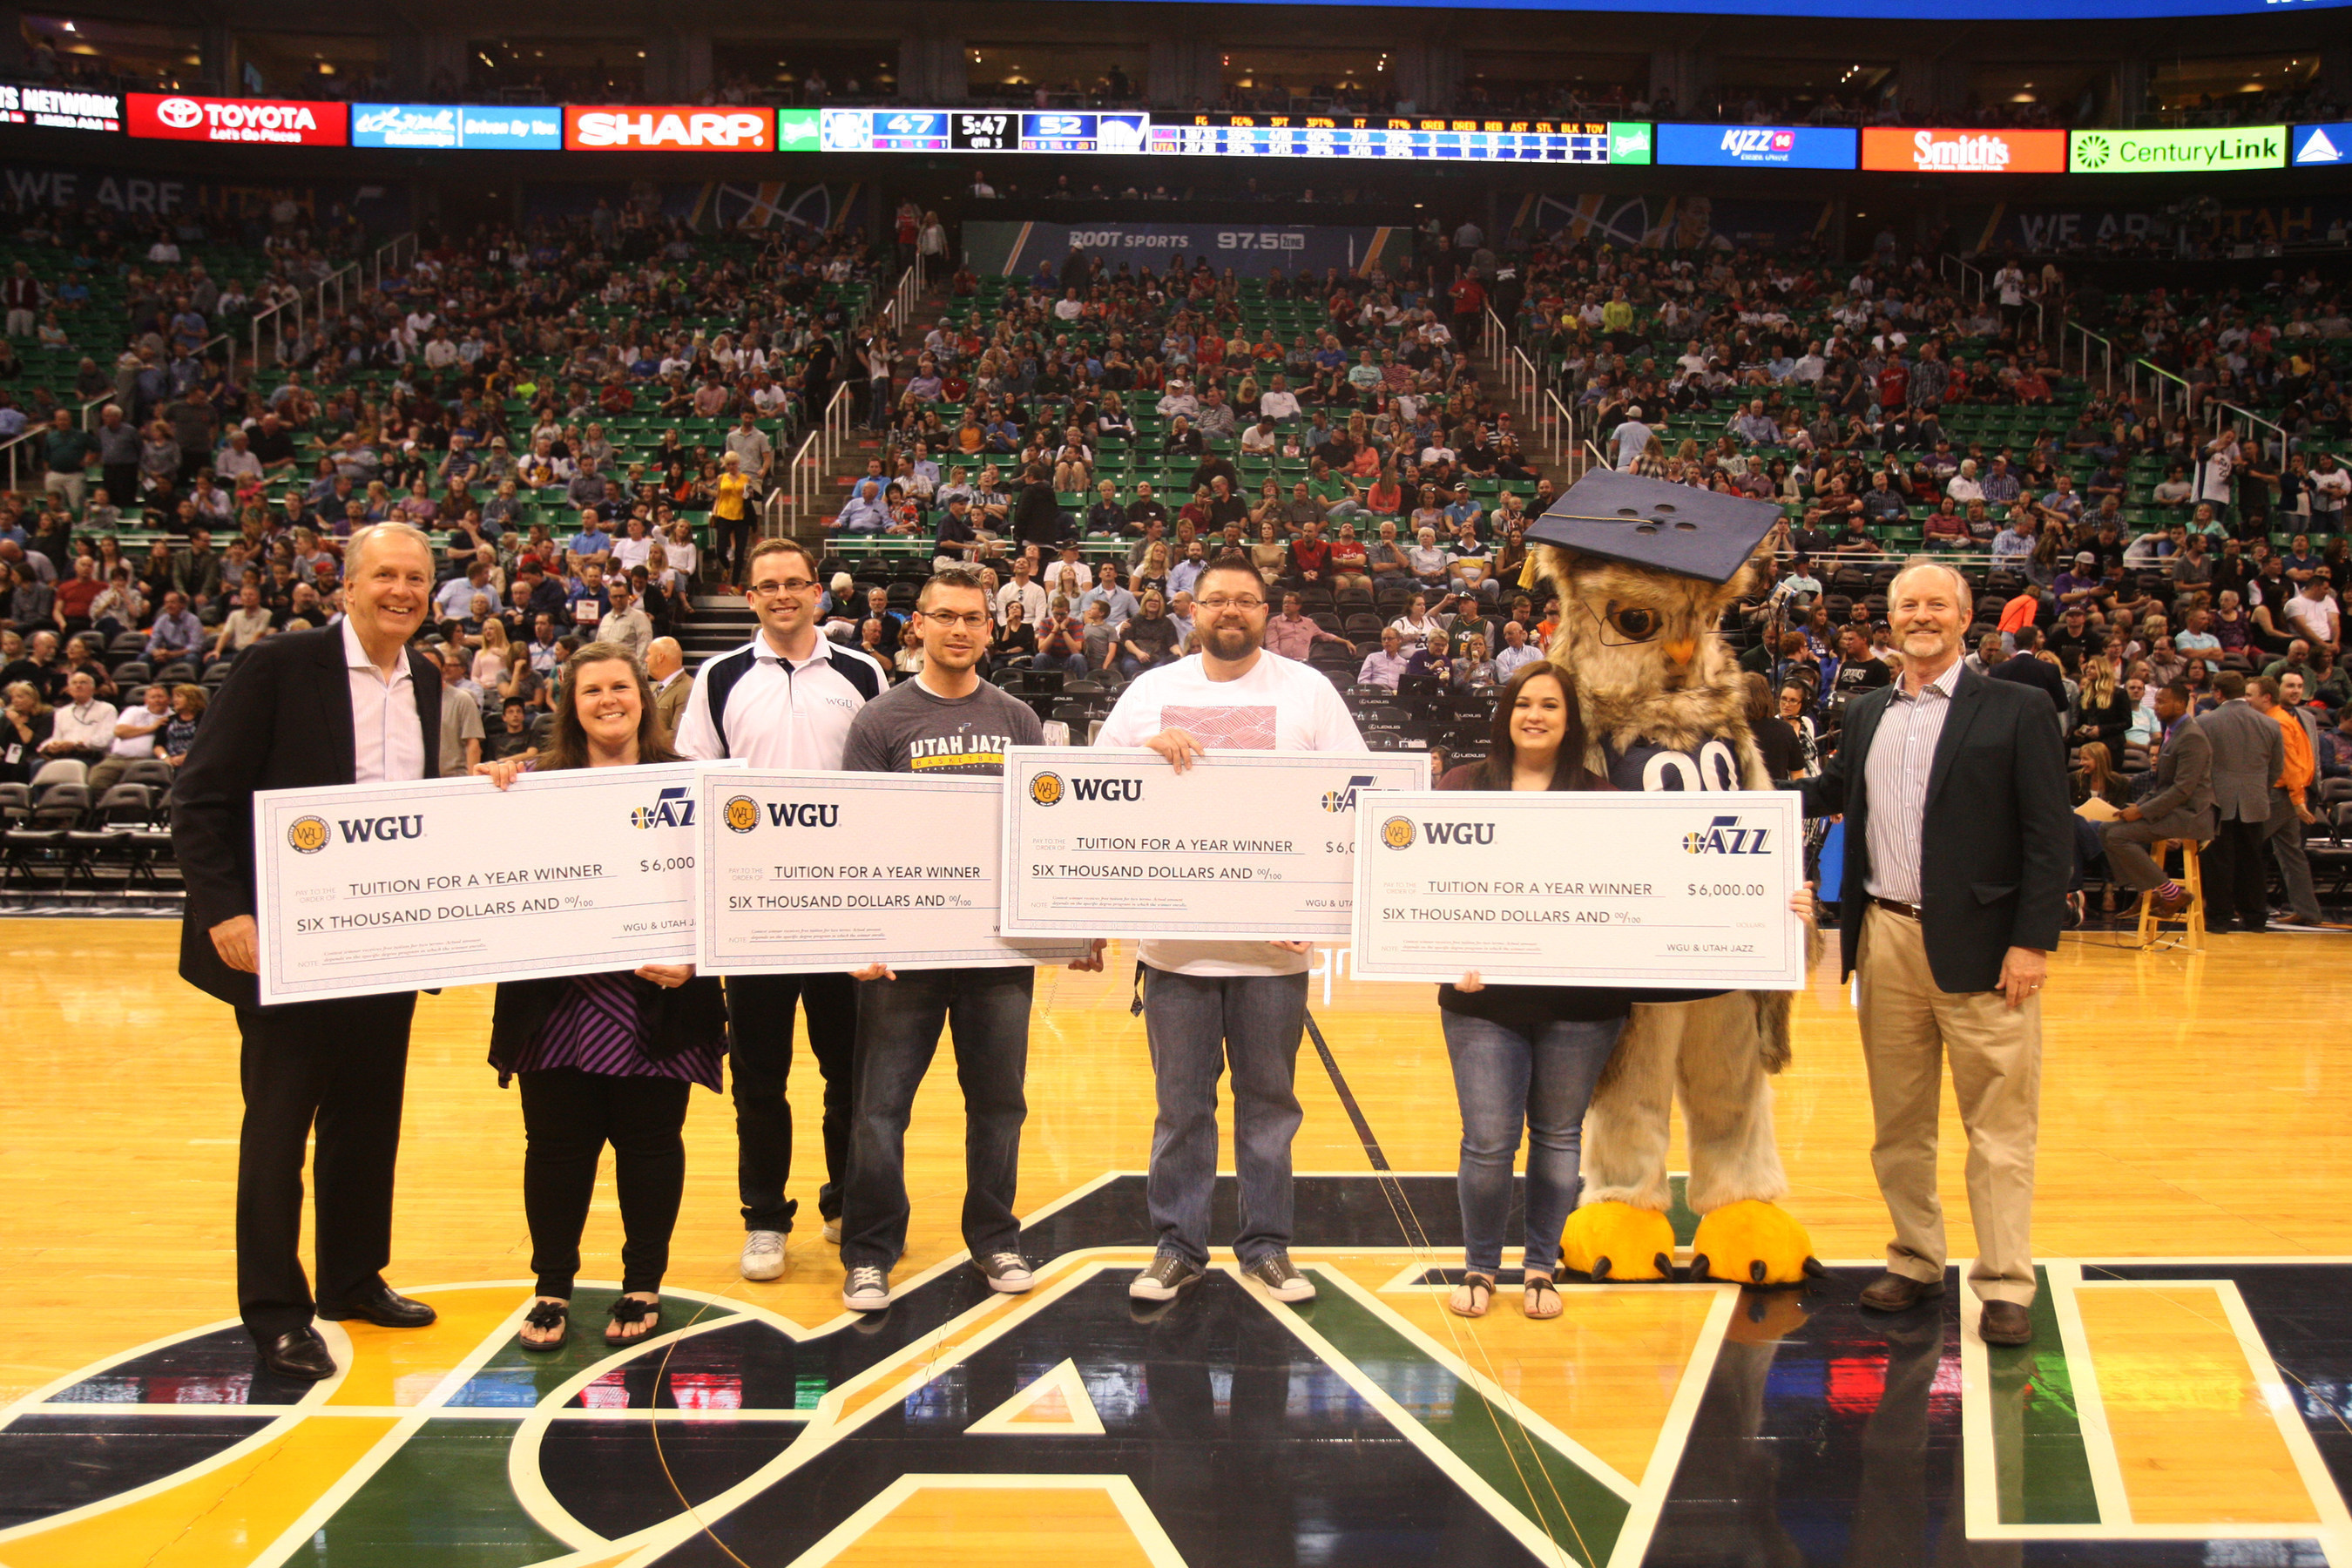 Local students awarded a full year of tuition at WGU, a $6,000 value